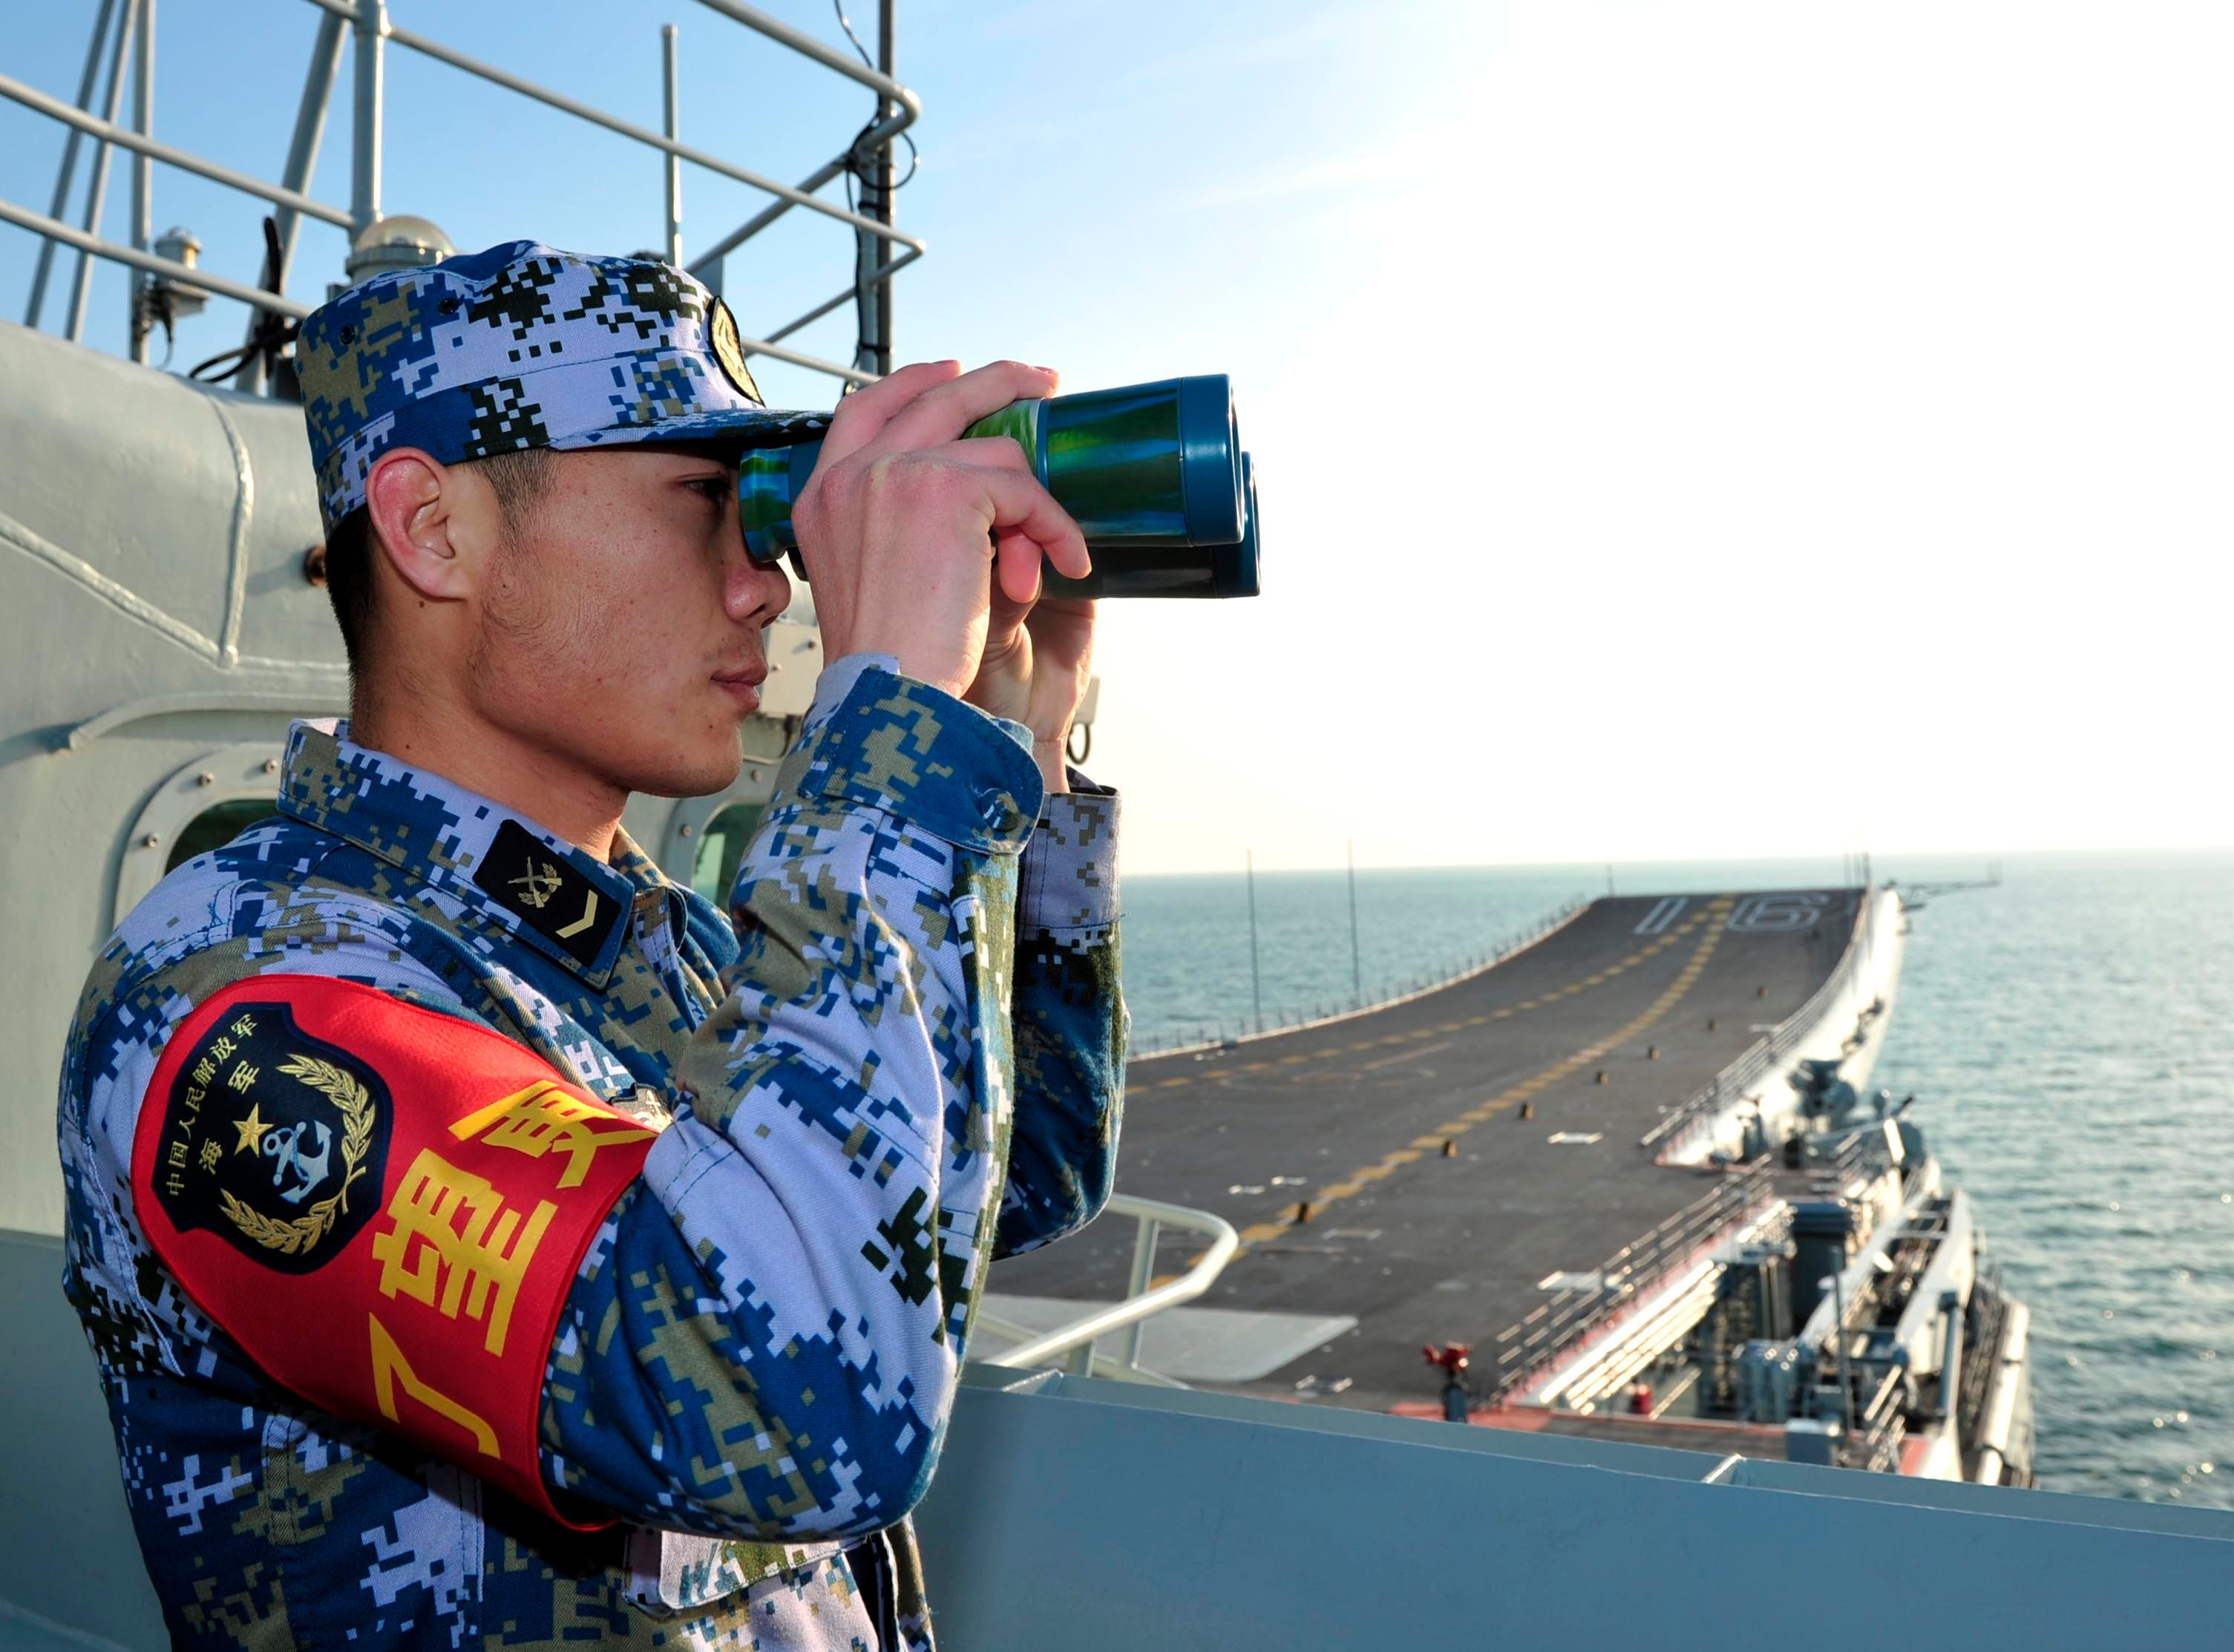 A naval soldier of the Chinese People's Liberation Army (PLA) views through a pair of binoculars onboard China's first aircraft carrier Liaoning as it visits a military harbour on the South China Sea. Xinhua Photo